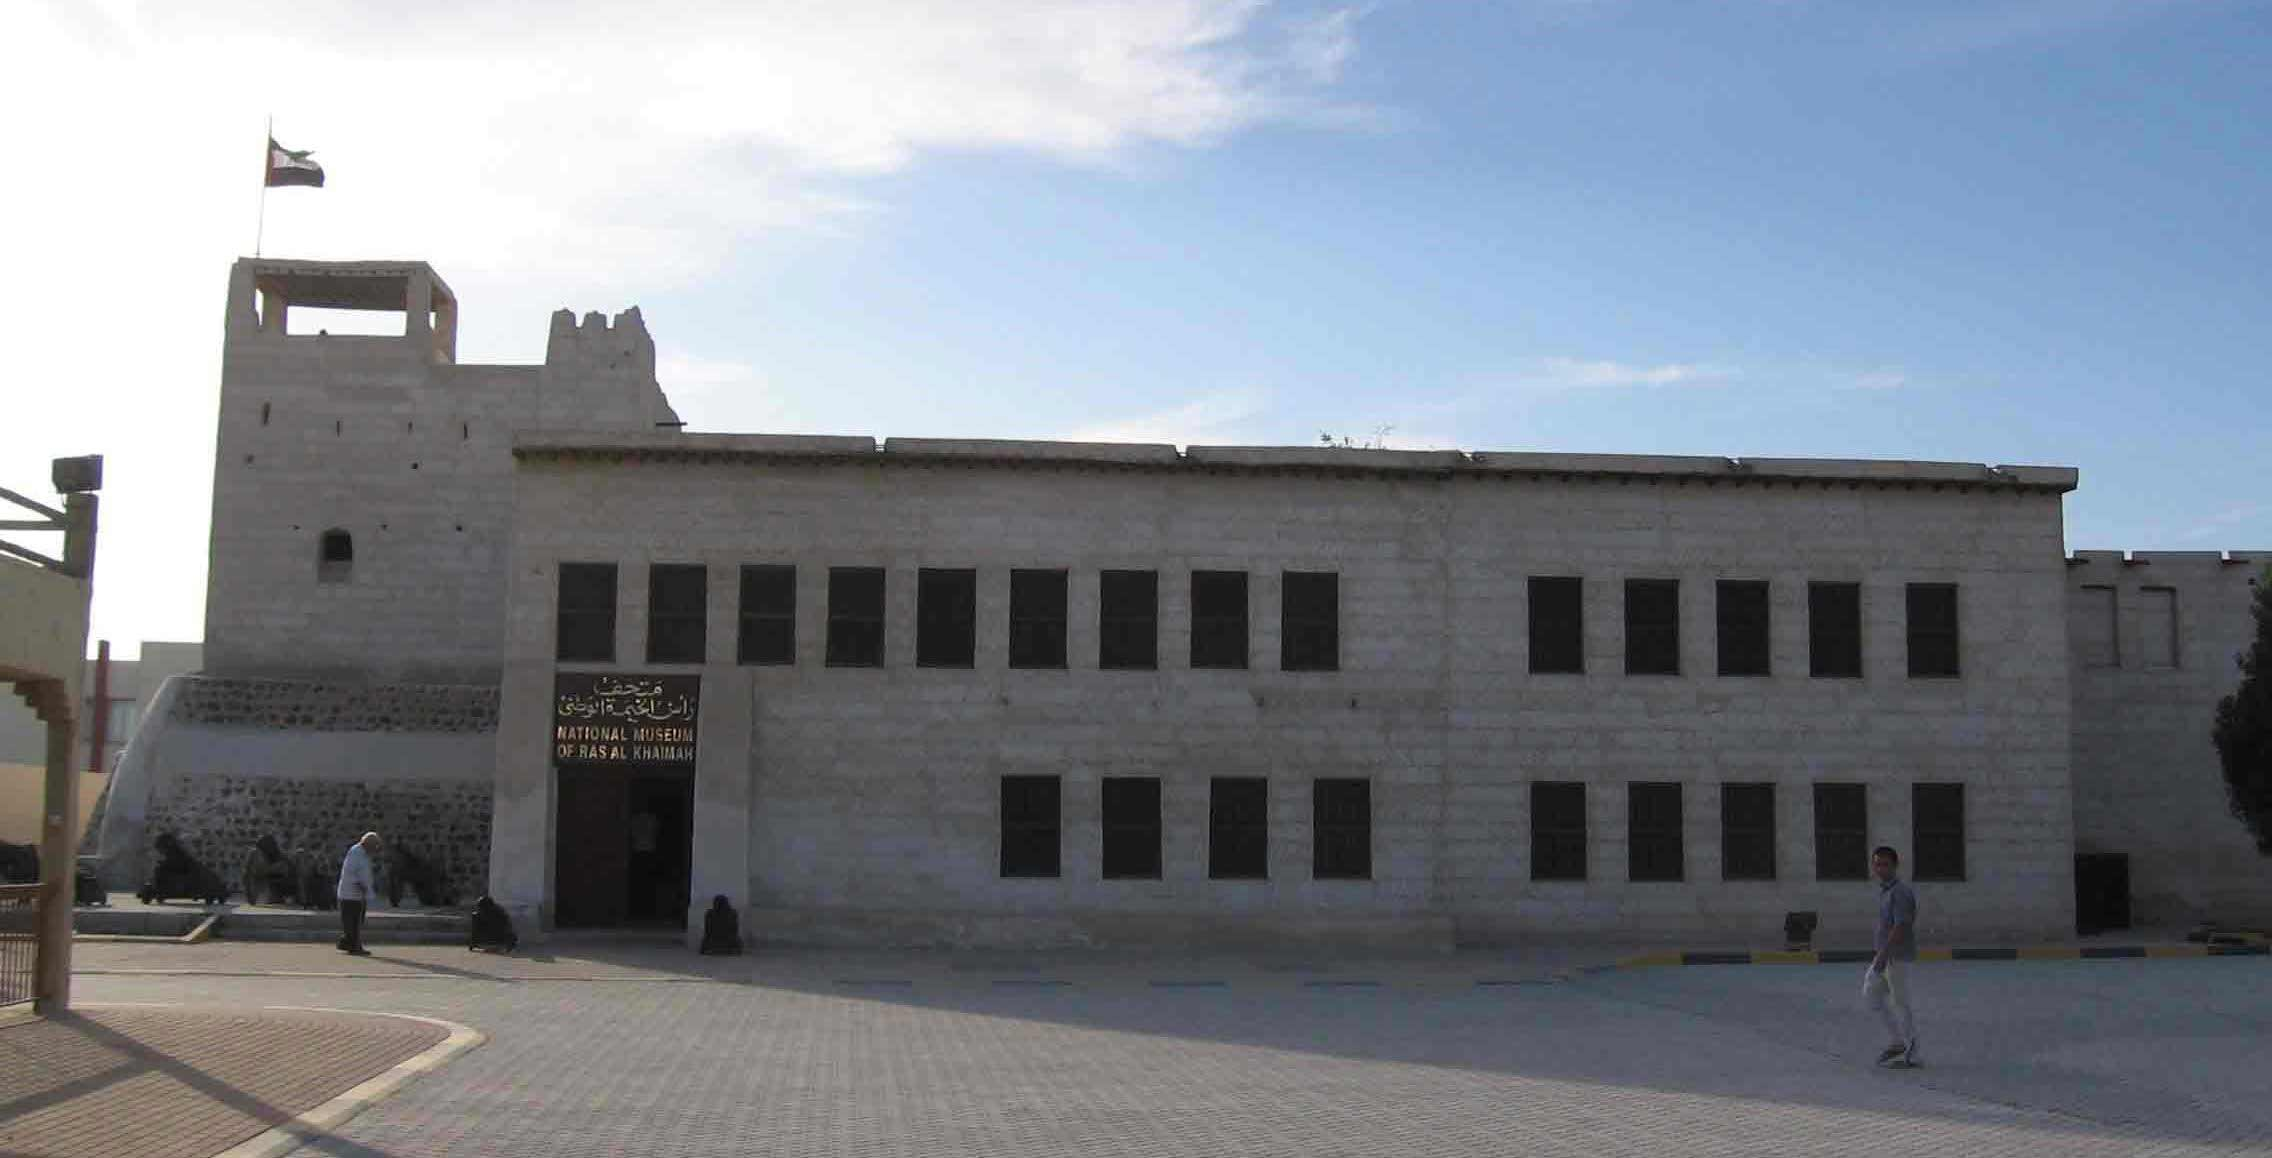 National Museum of Ras Al Khaimah